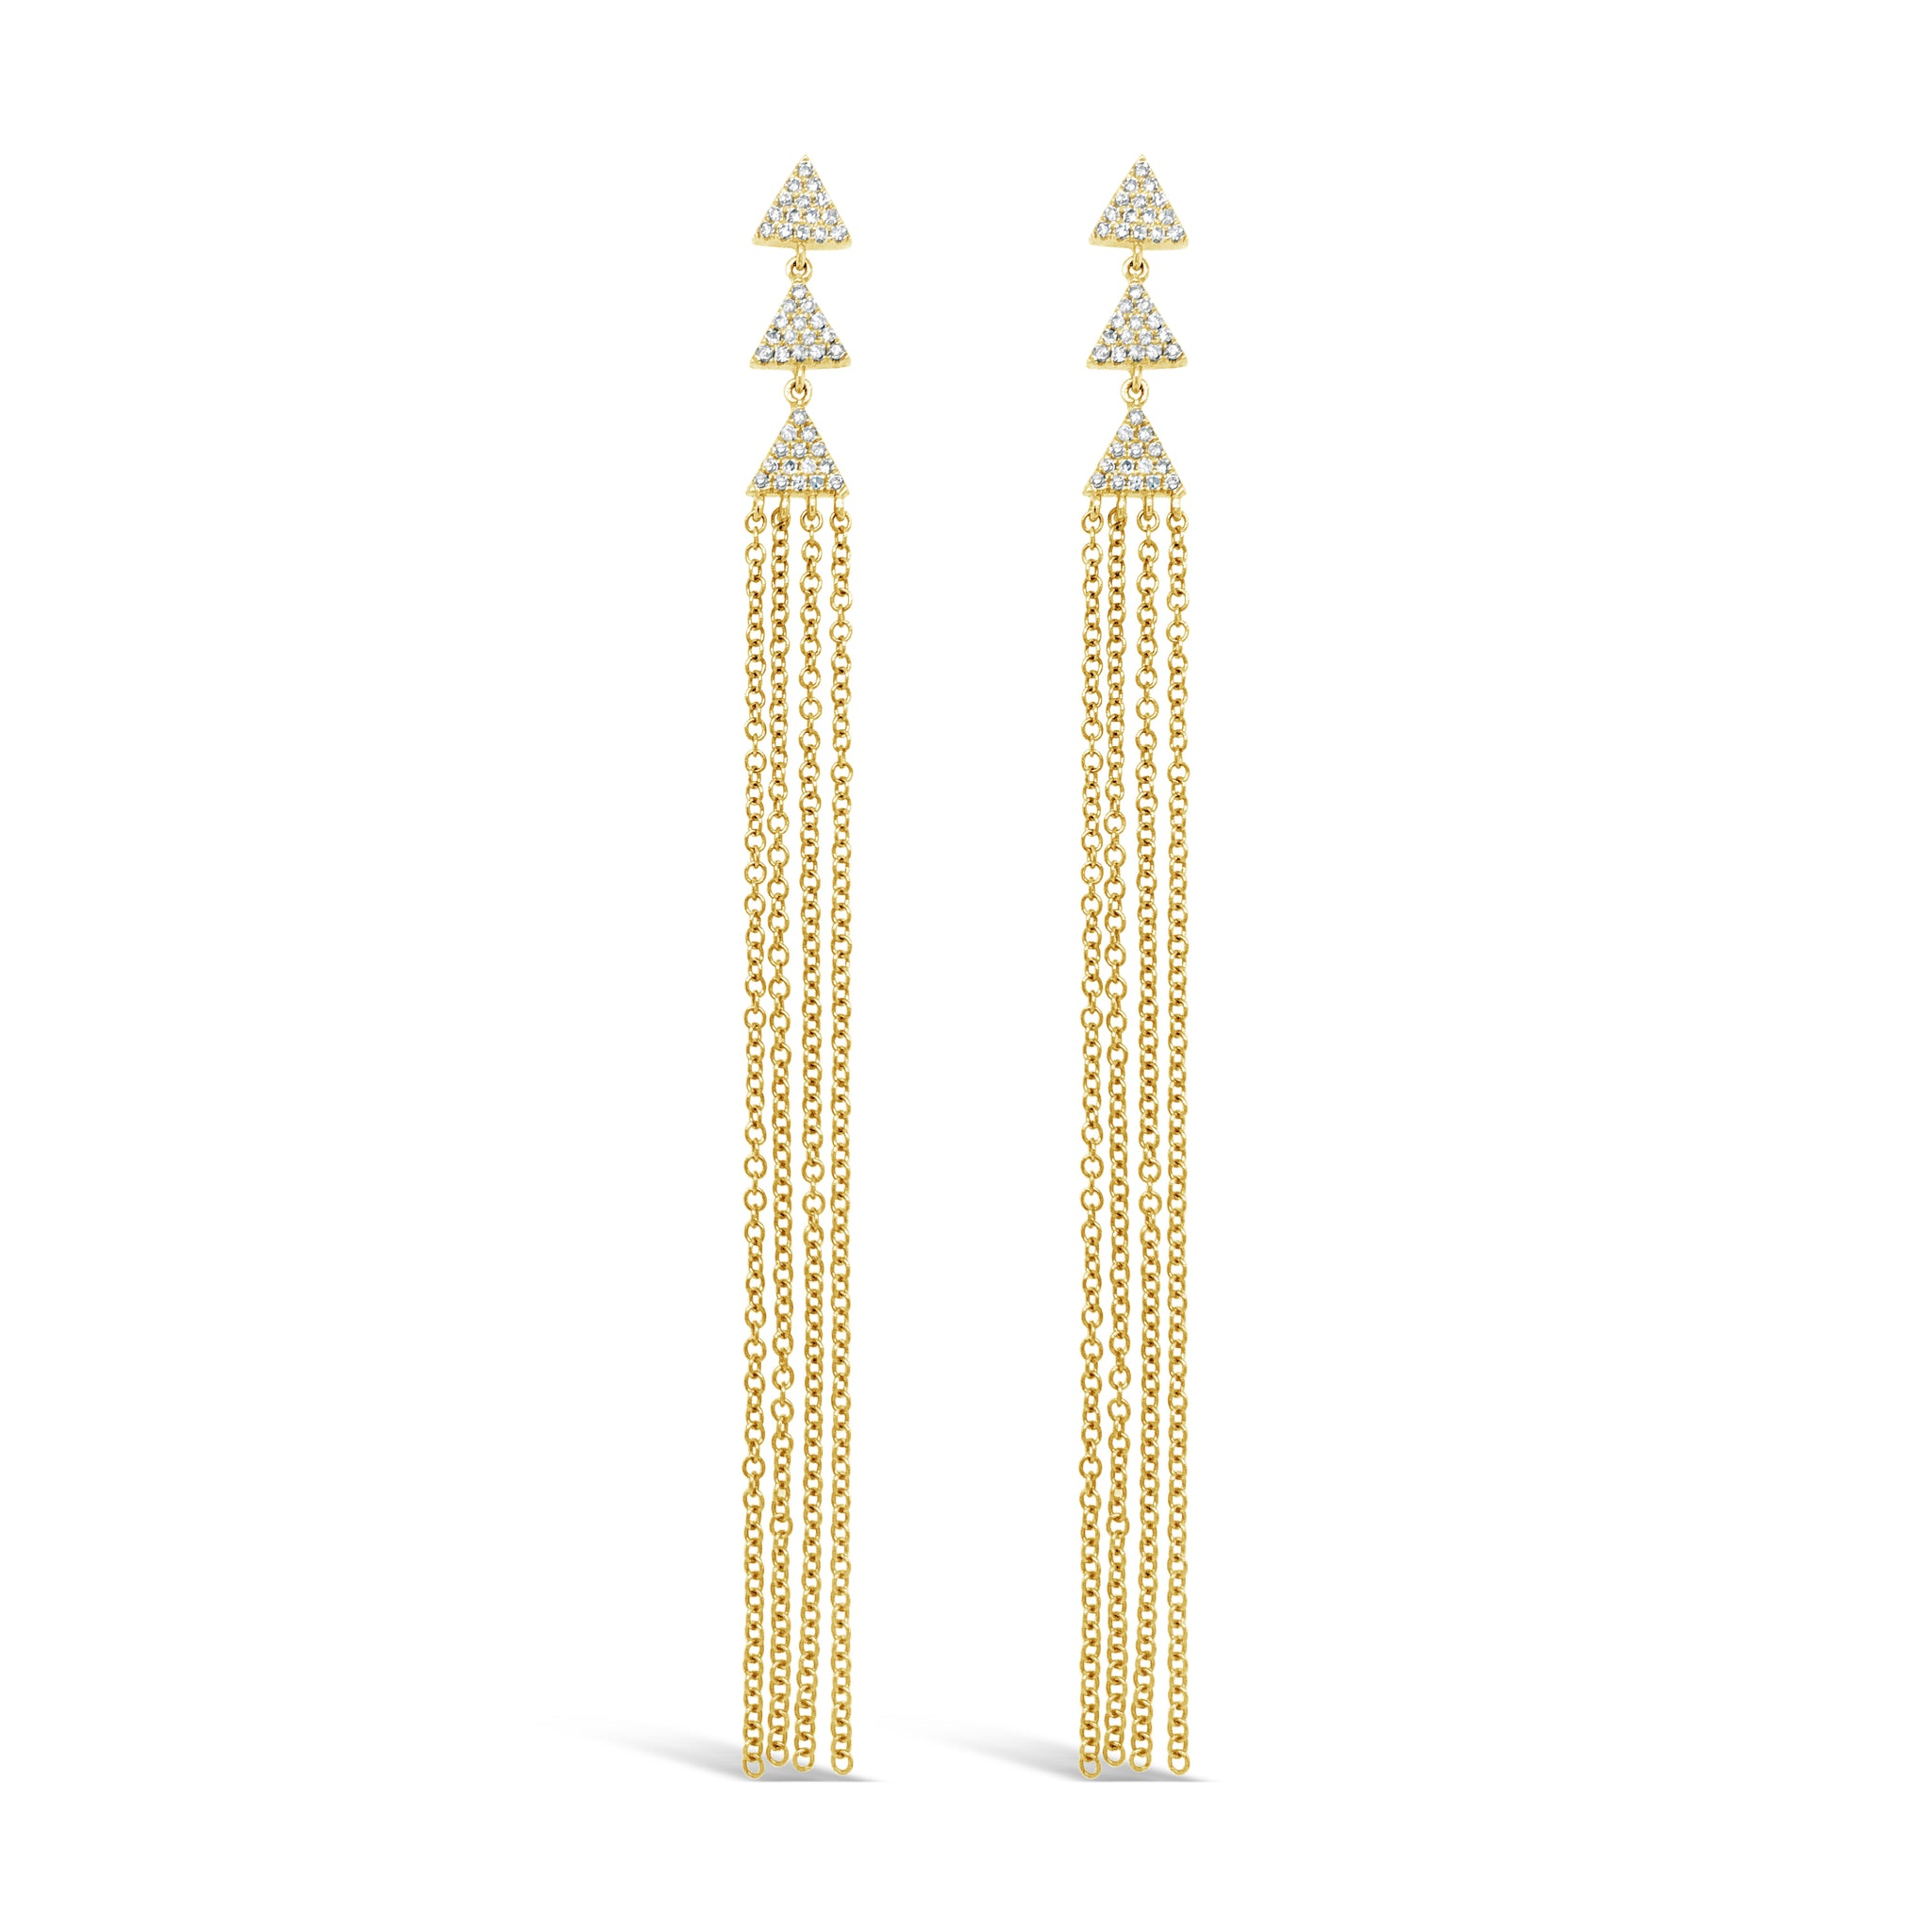 Triple Pave Triangles with Long Chains Earring